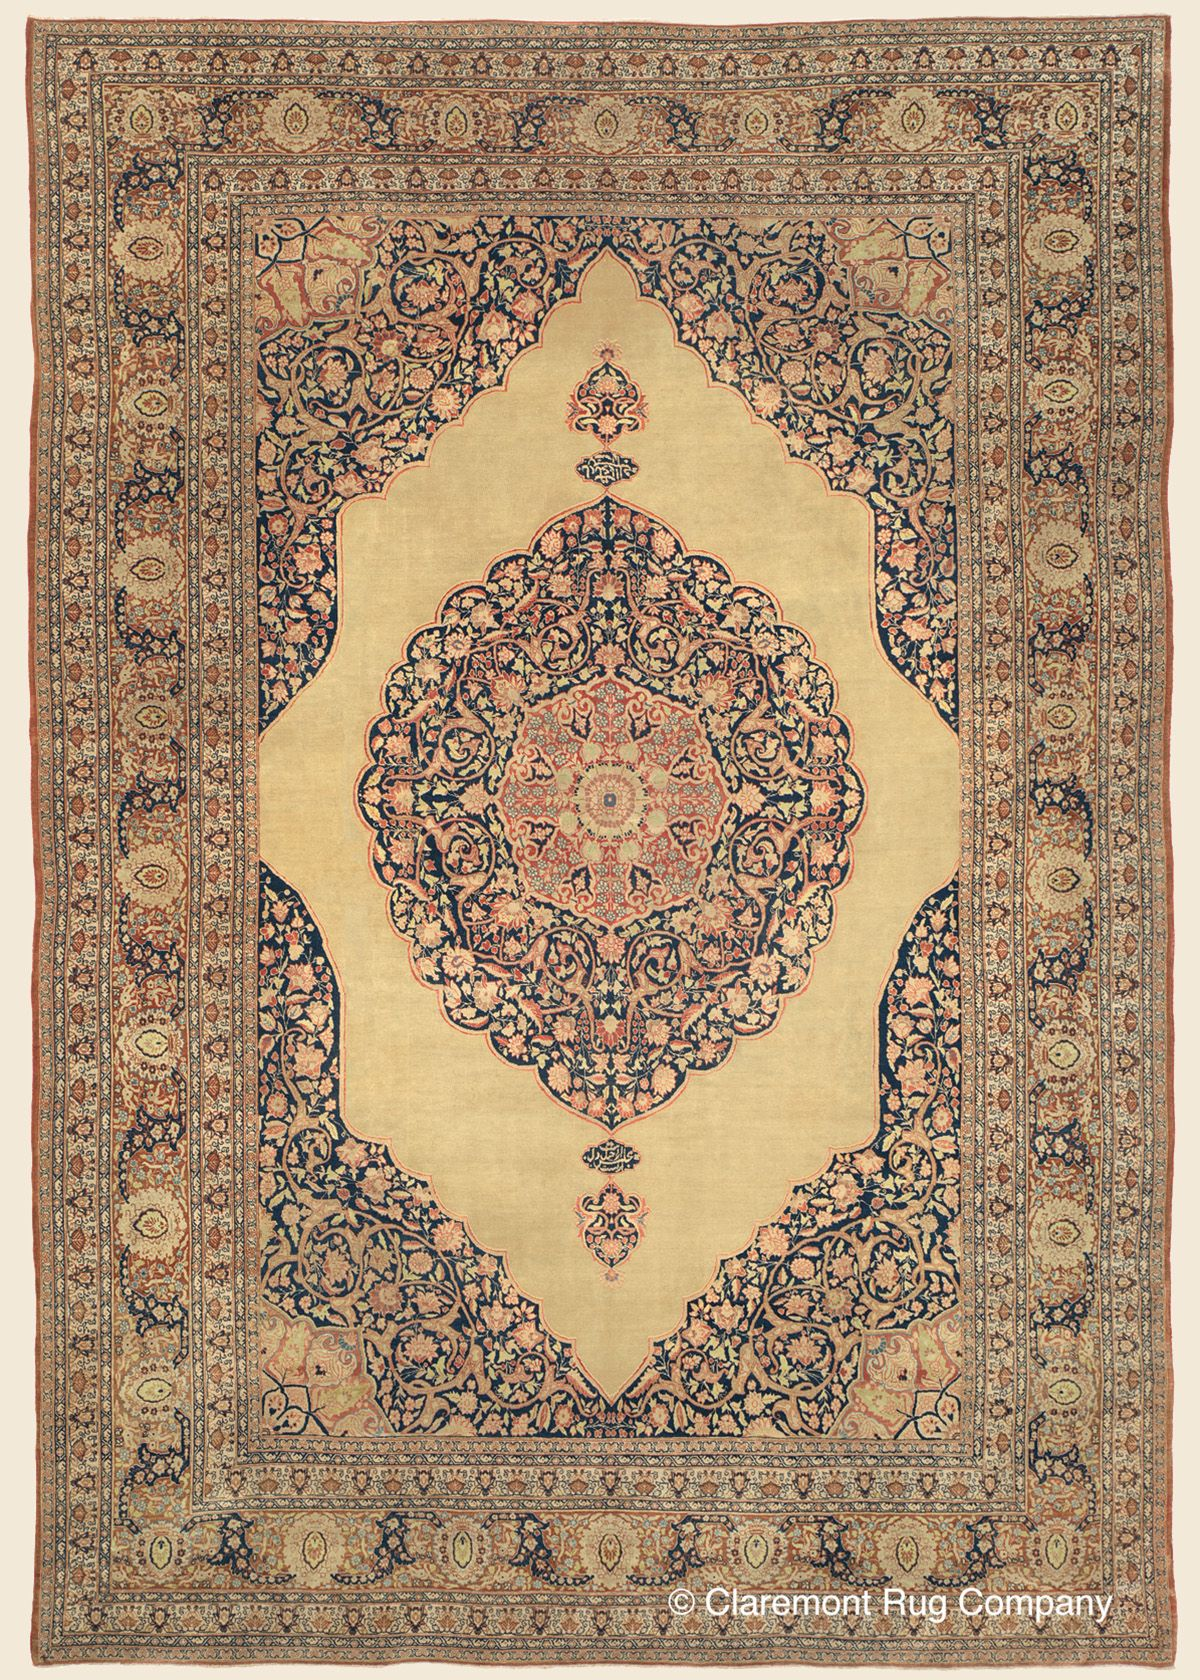 Tabriz Northwest Persian Antique Rug 9 1 X 13 3 Circa 1900 Claremont Rug Company Rugs Persian Rug Designs Rugs On Carpet